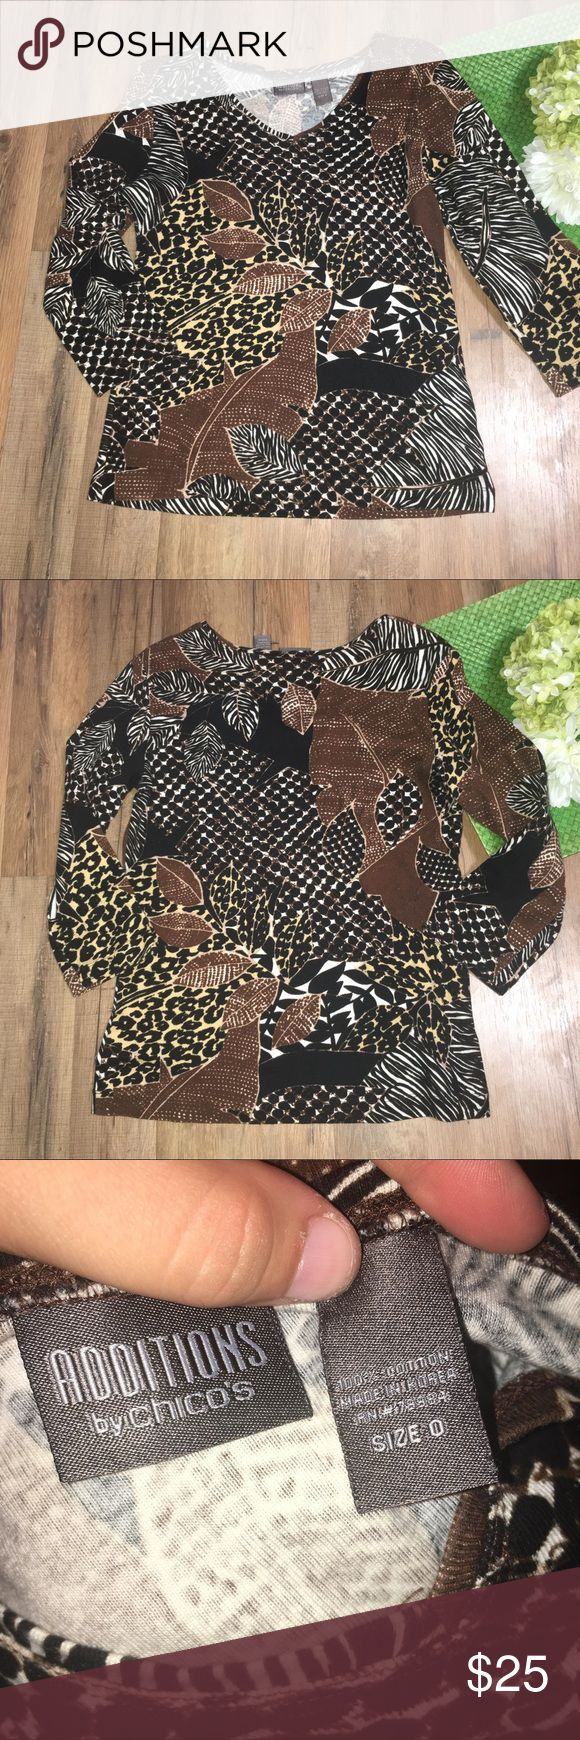 CHICO'S | leaf animal print tee Length: 23"